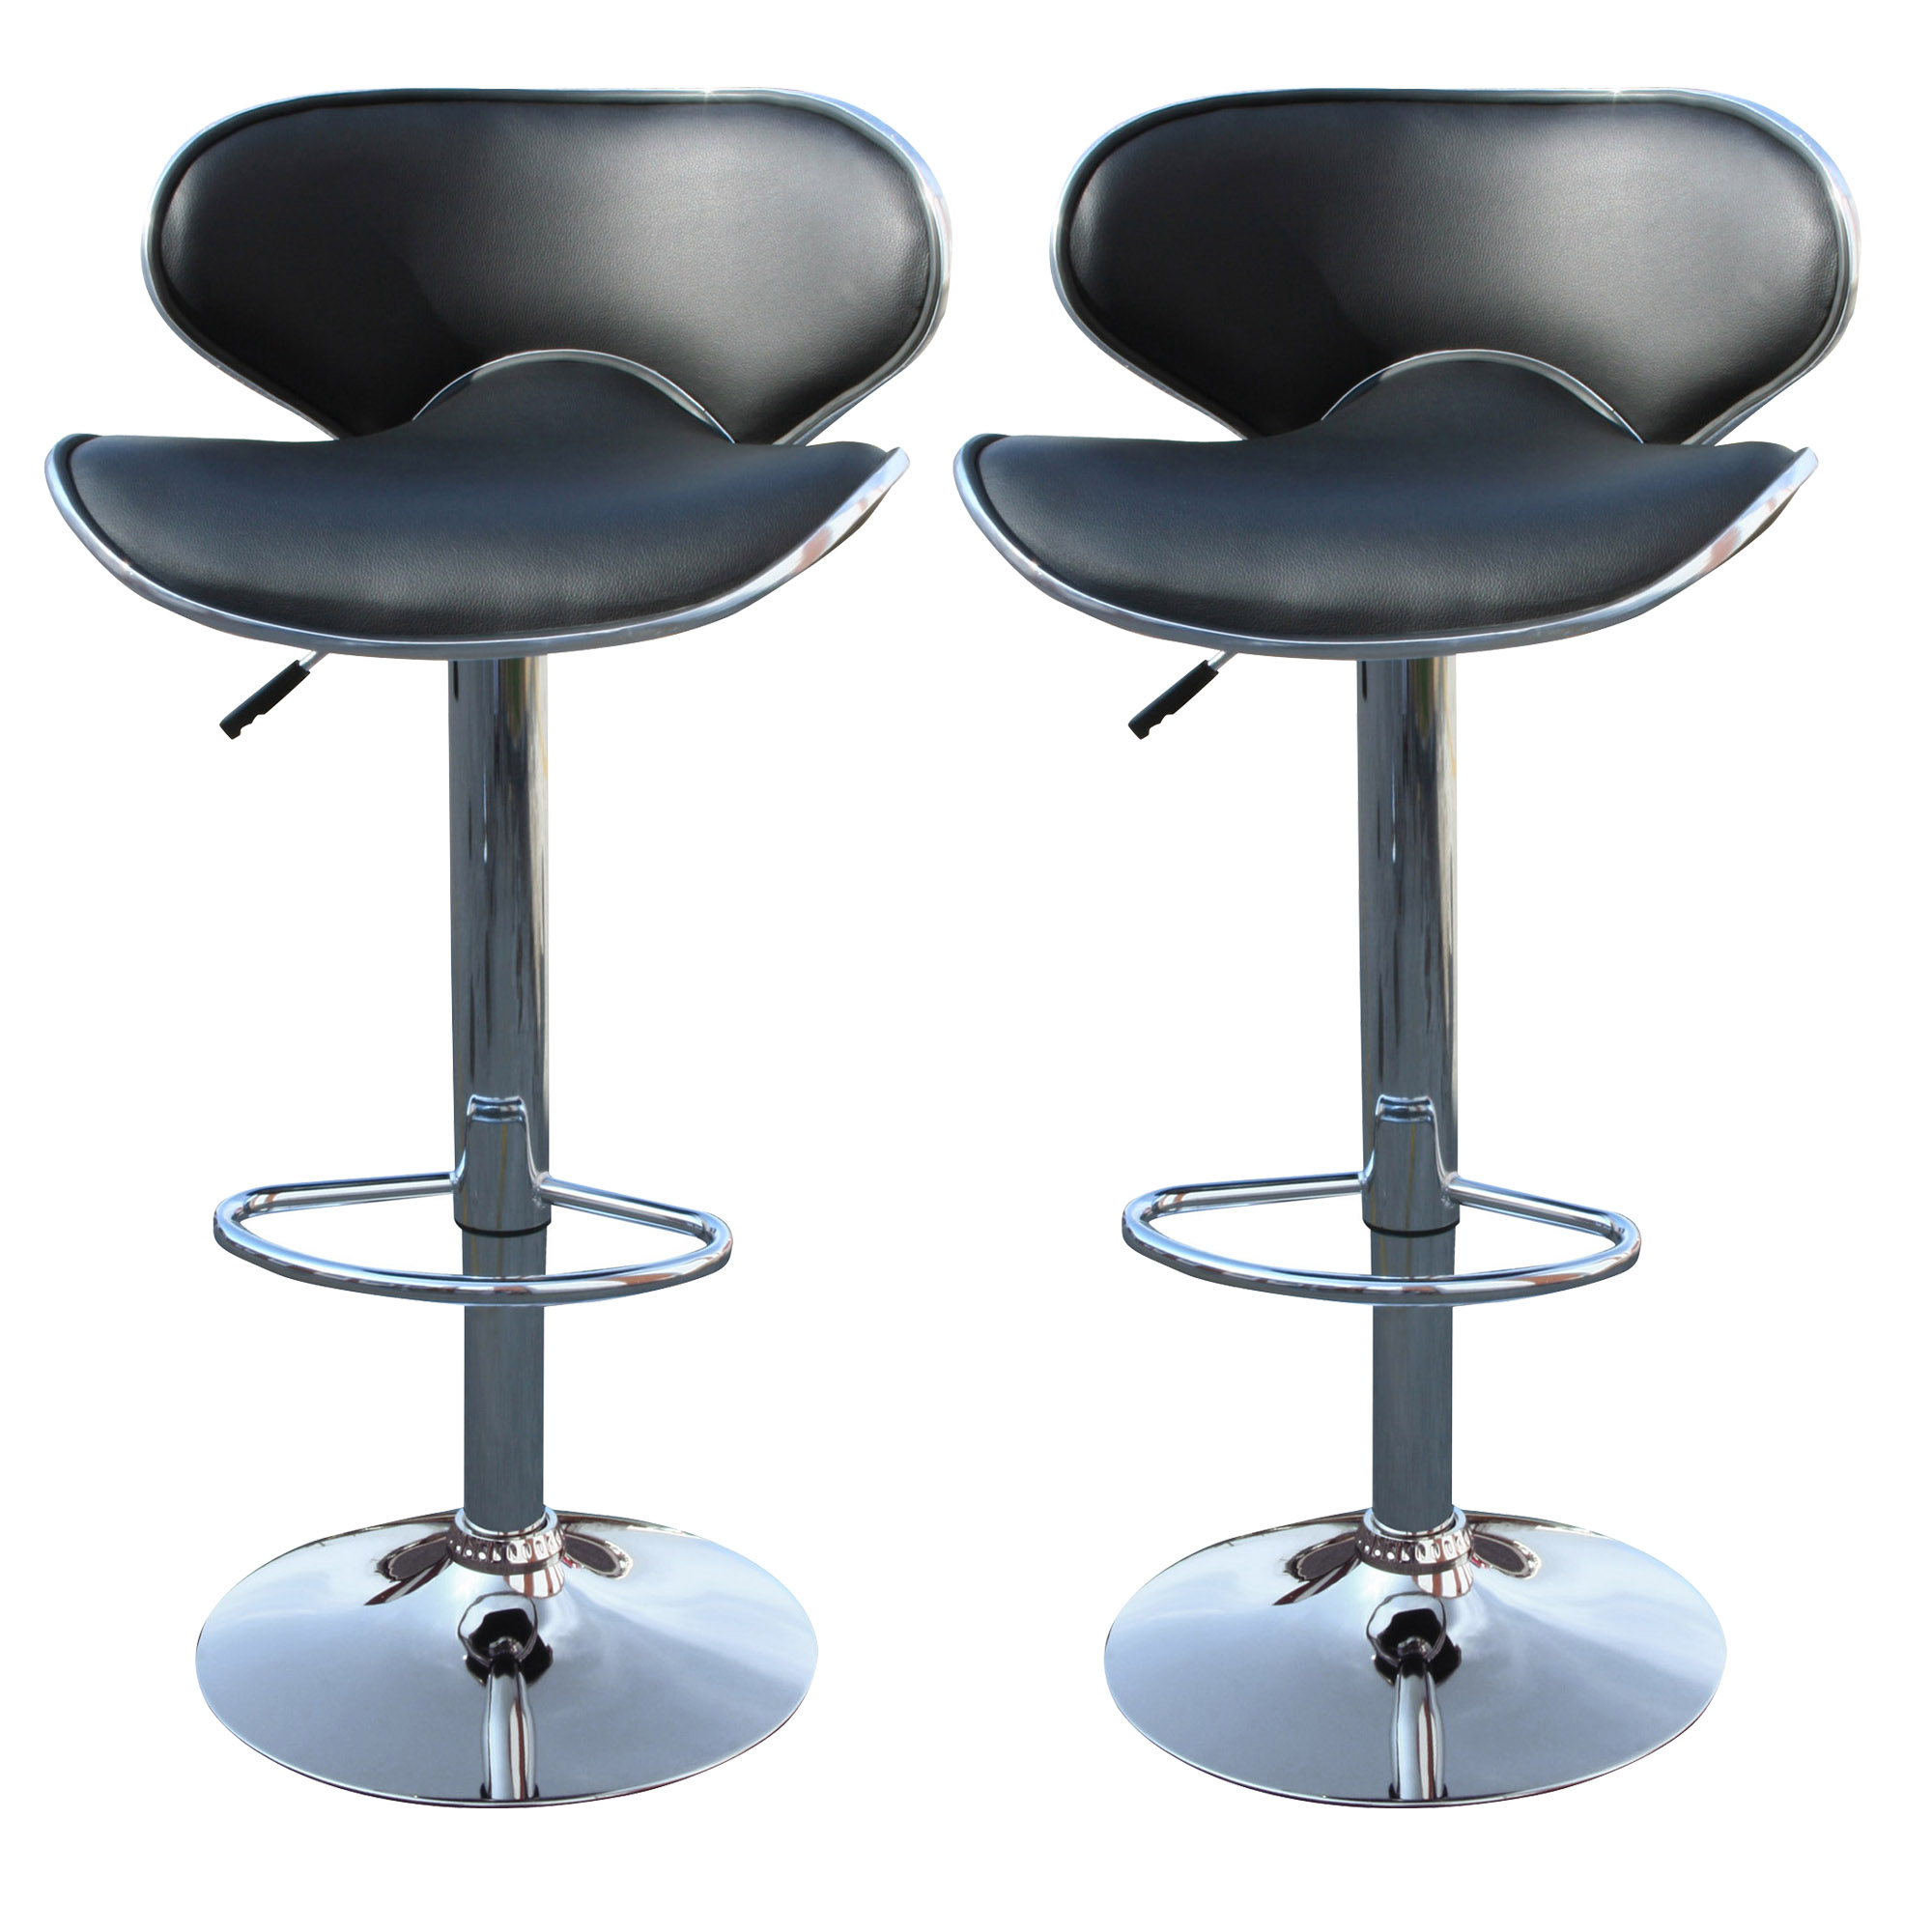 BS2356SET AmeriHome Adjustable Bar Stools : bs2356set from www.buffalotools.com size 2000 x 2000 jpeg 362kB